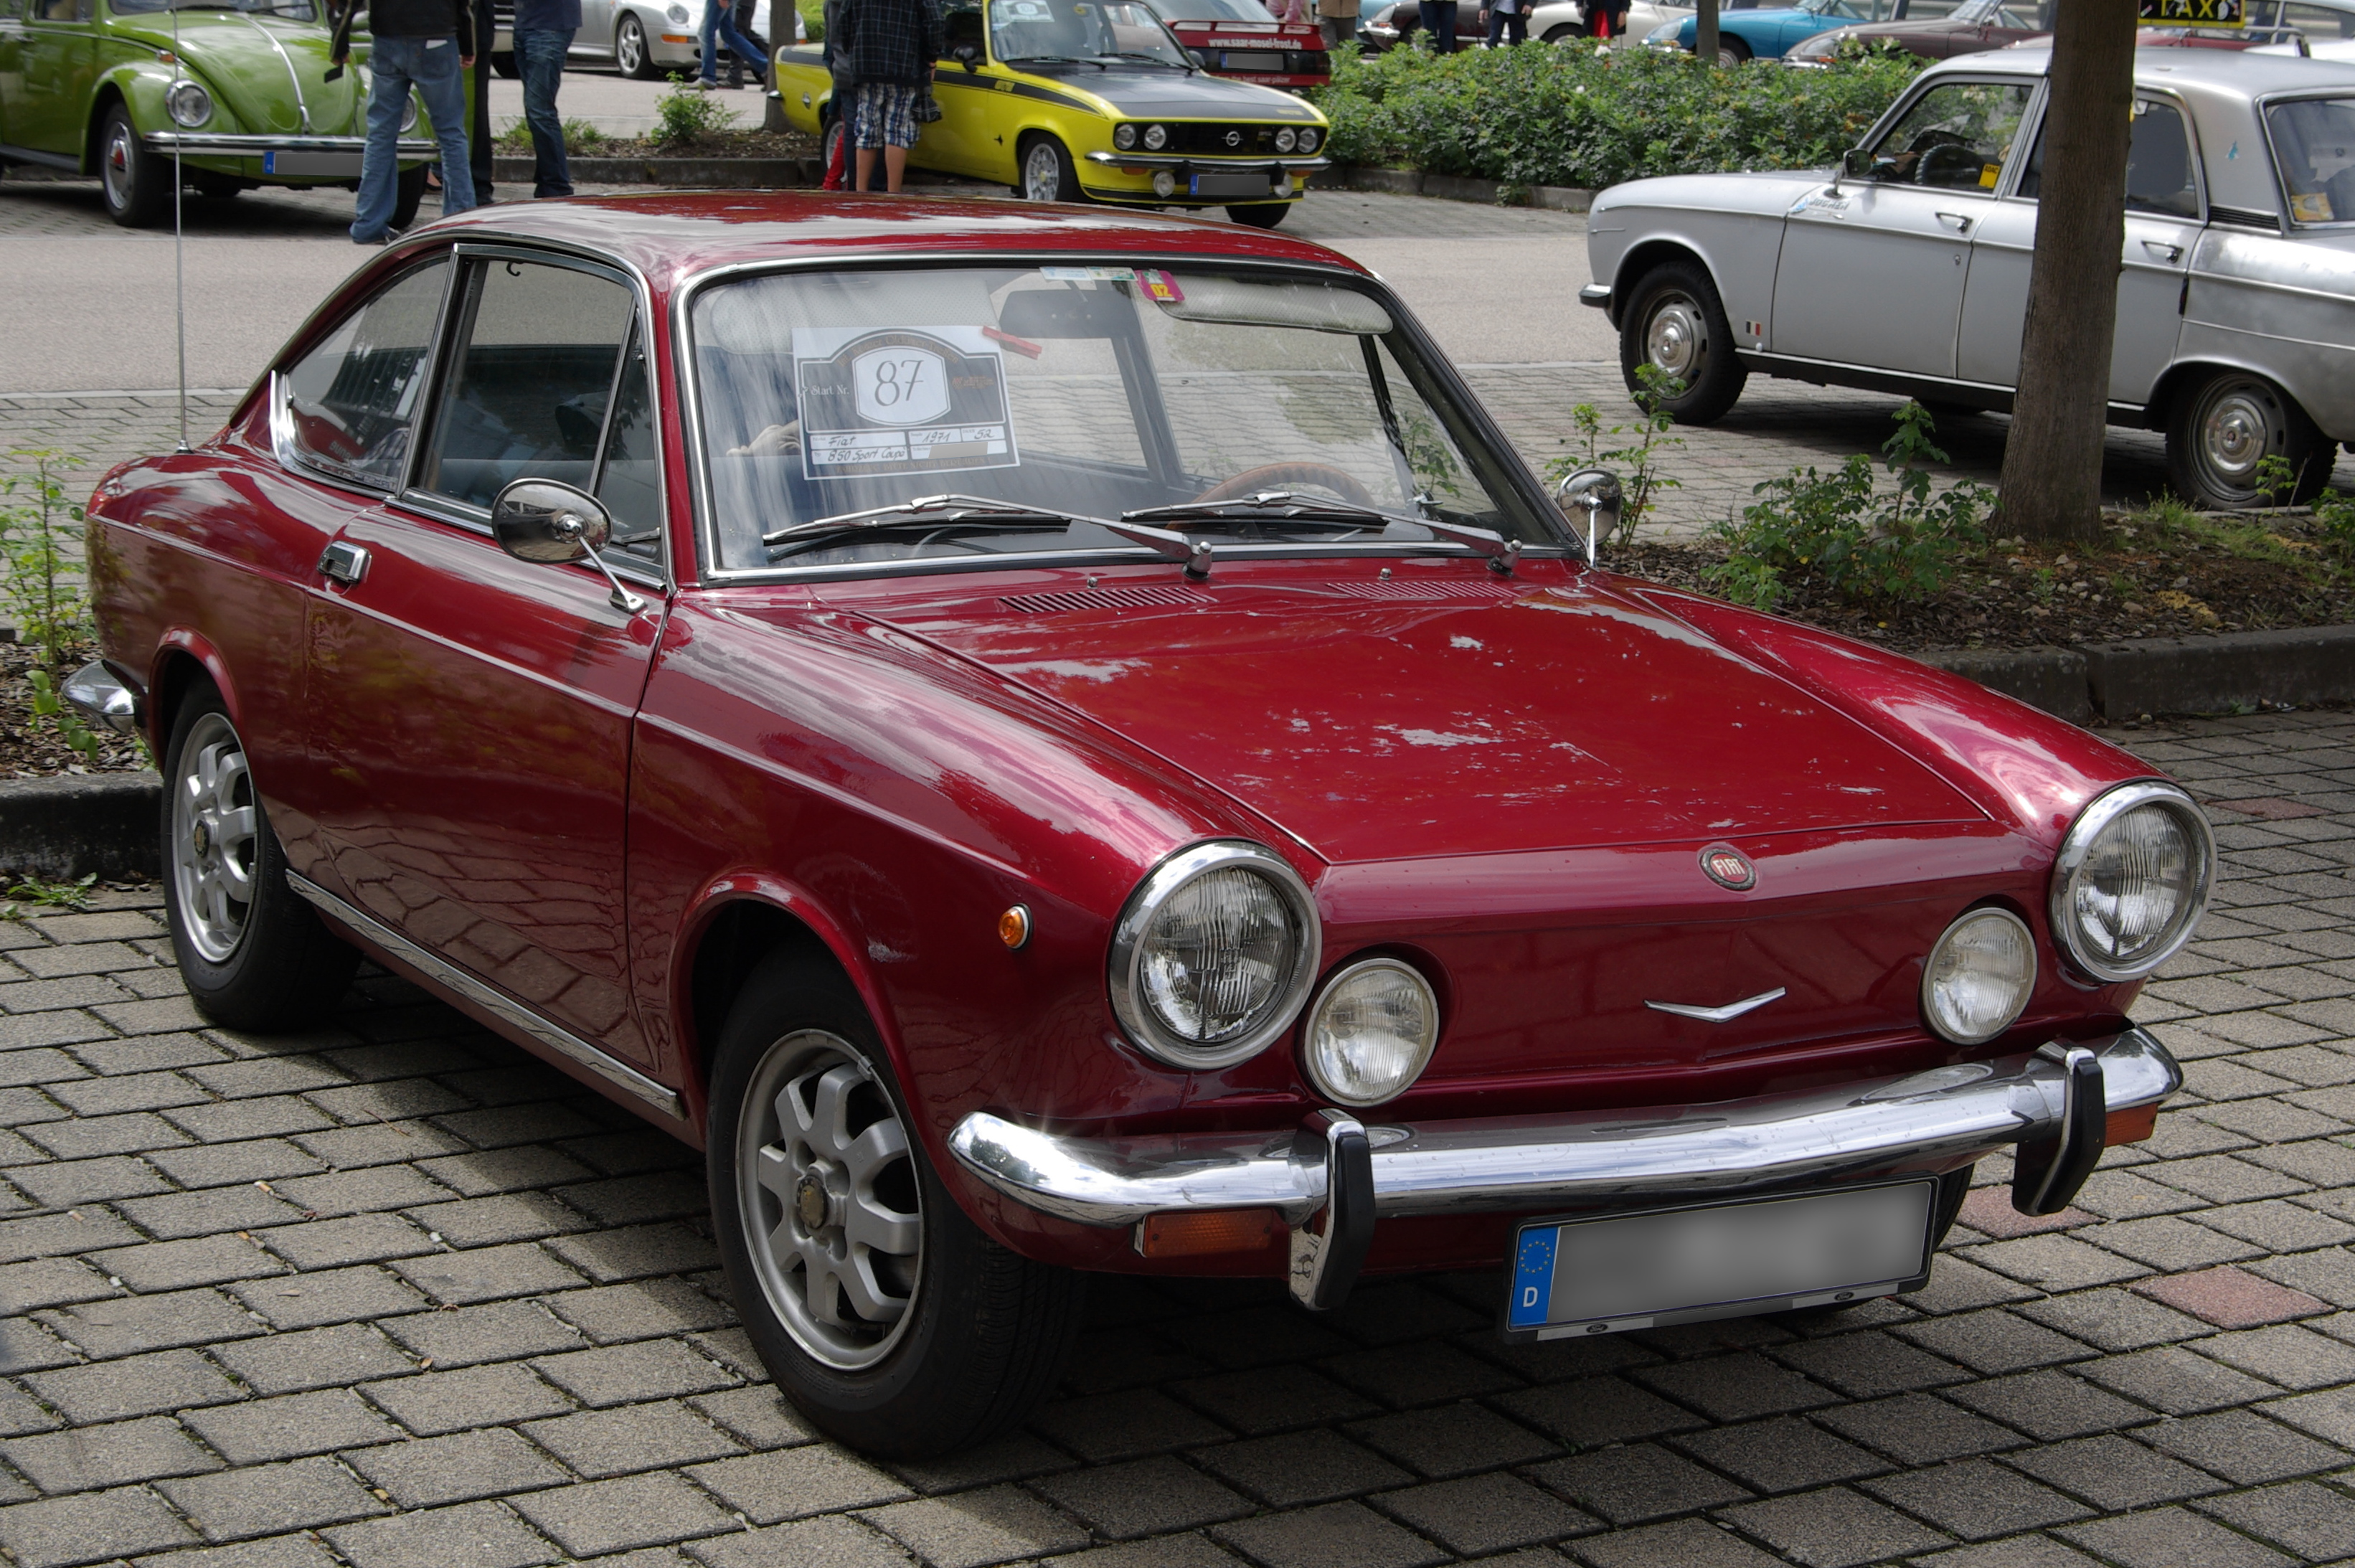 file fiat 850 sport coupe 2012 07 15 14 59 09 jpg wikimedia commons. Black Bedroom Furniture Sets. Home Design Ideas